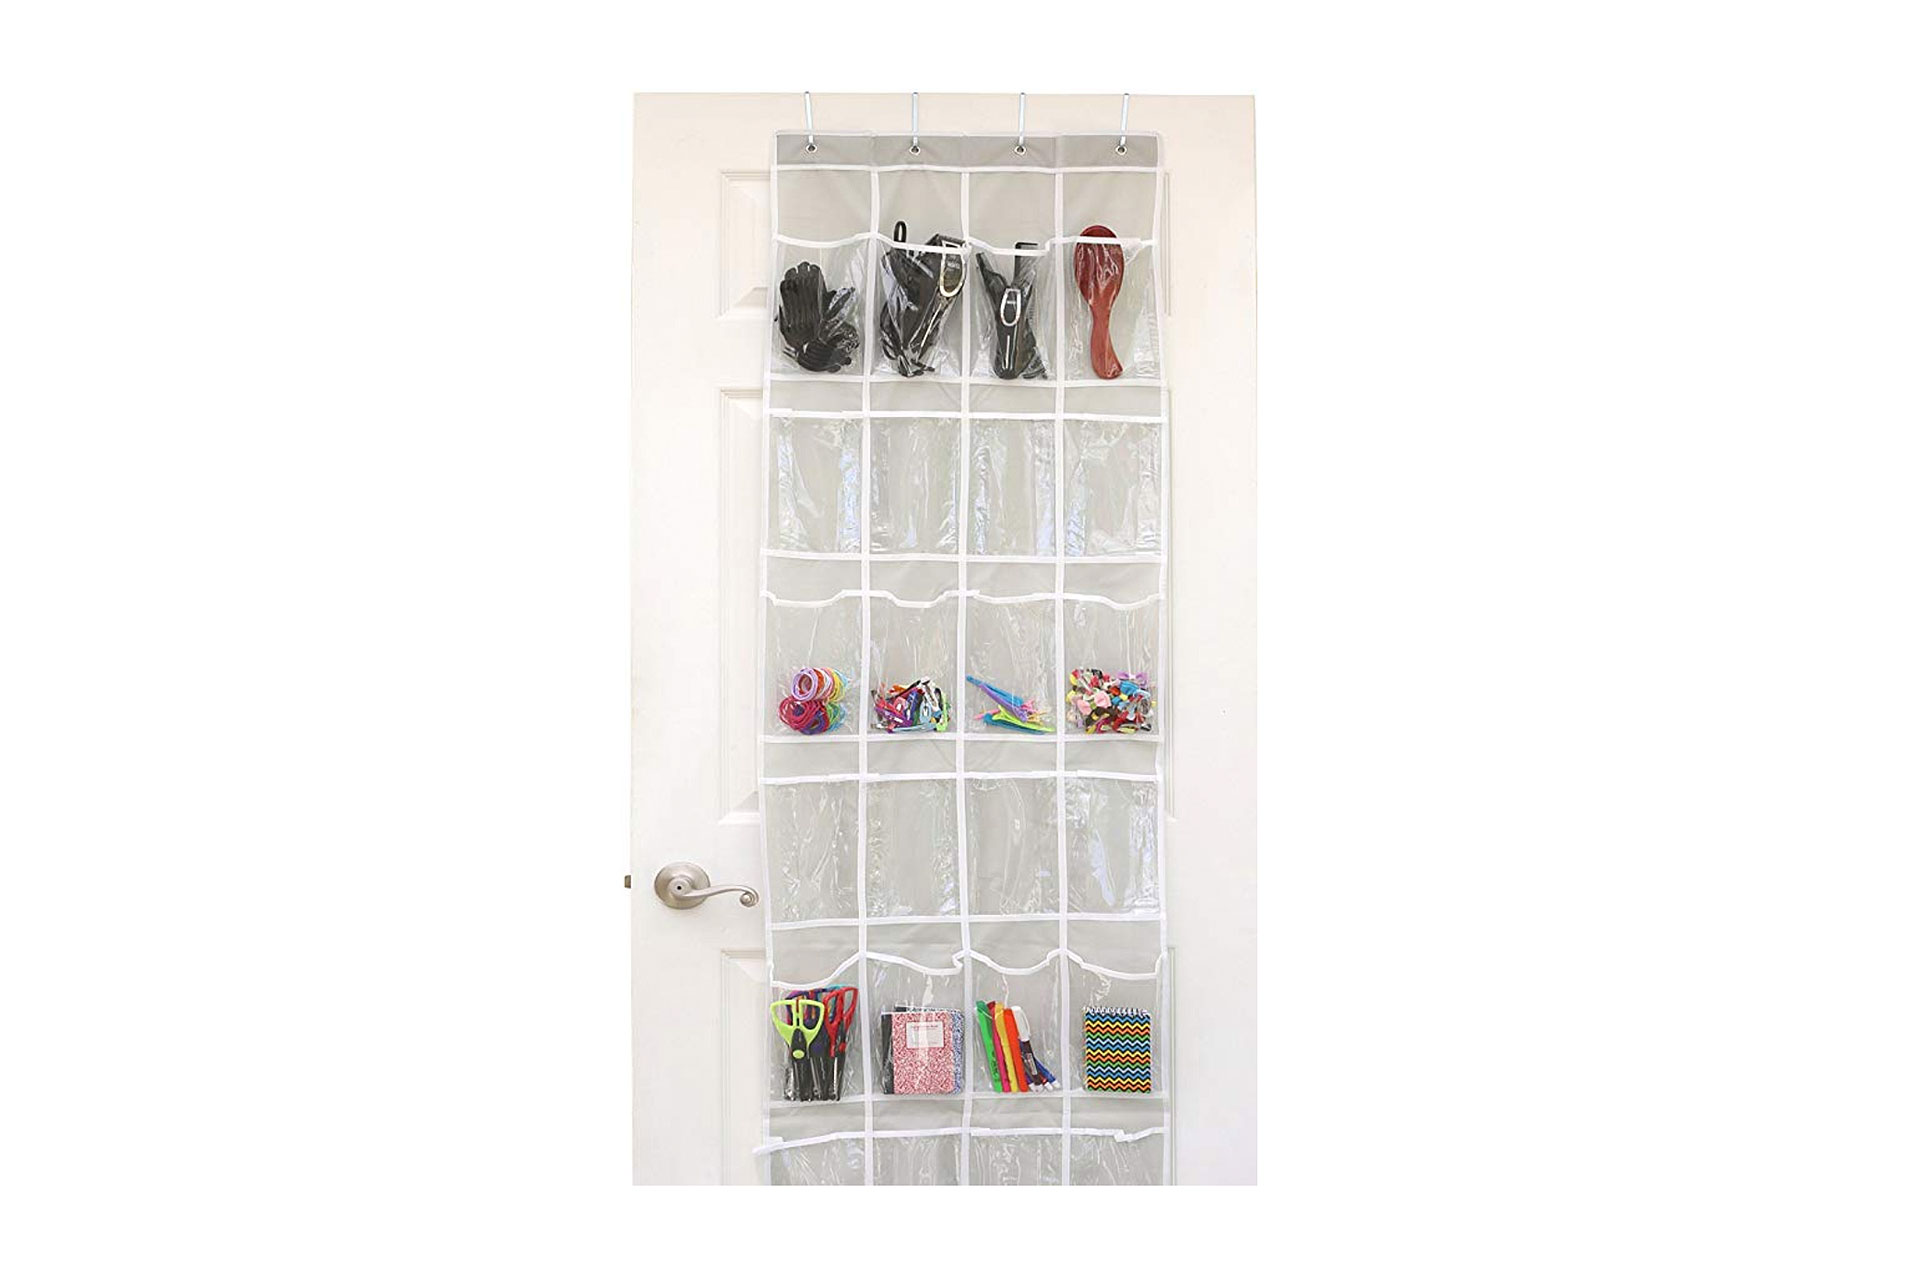 Hanging Shoe Organizer with Clear Pockets; Courtesy of Amazon